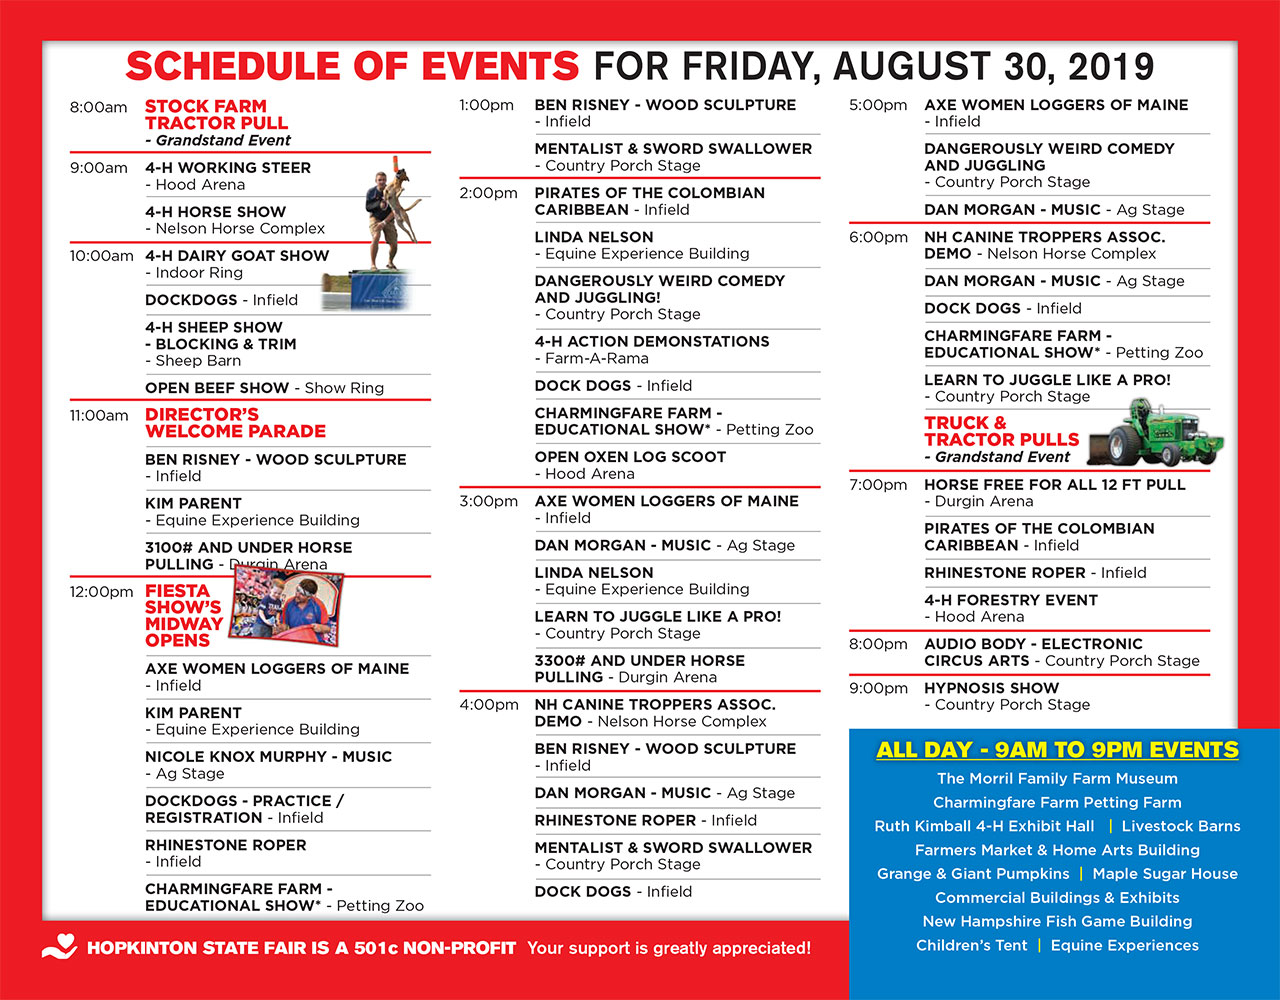 HSF Schedule of Events - Friday, 30 Aug 2019 - Hopkinton